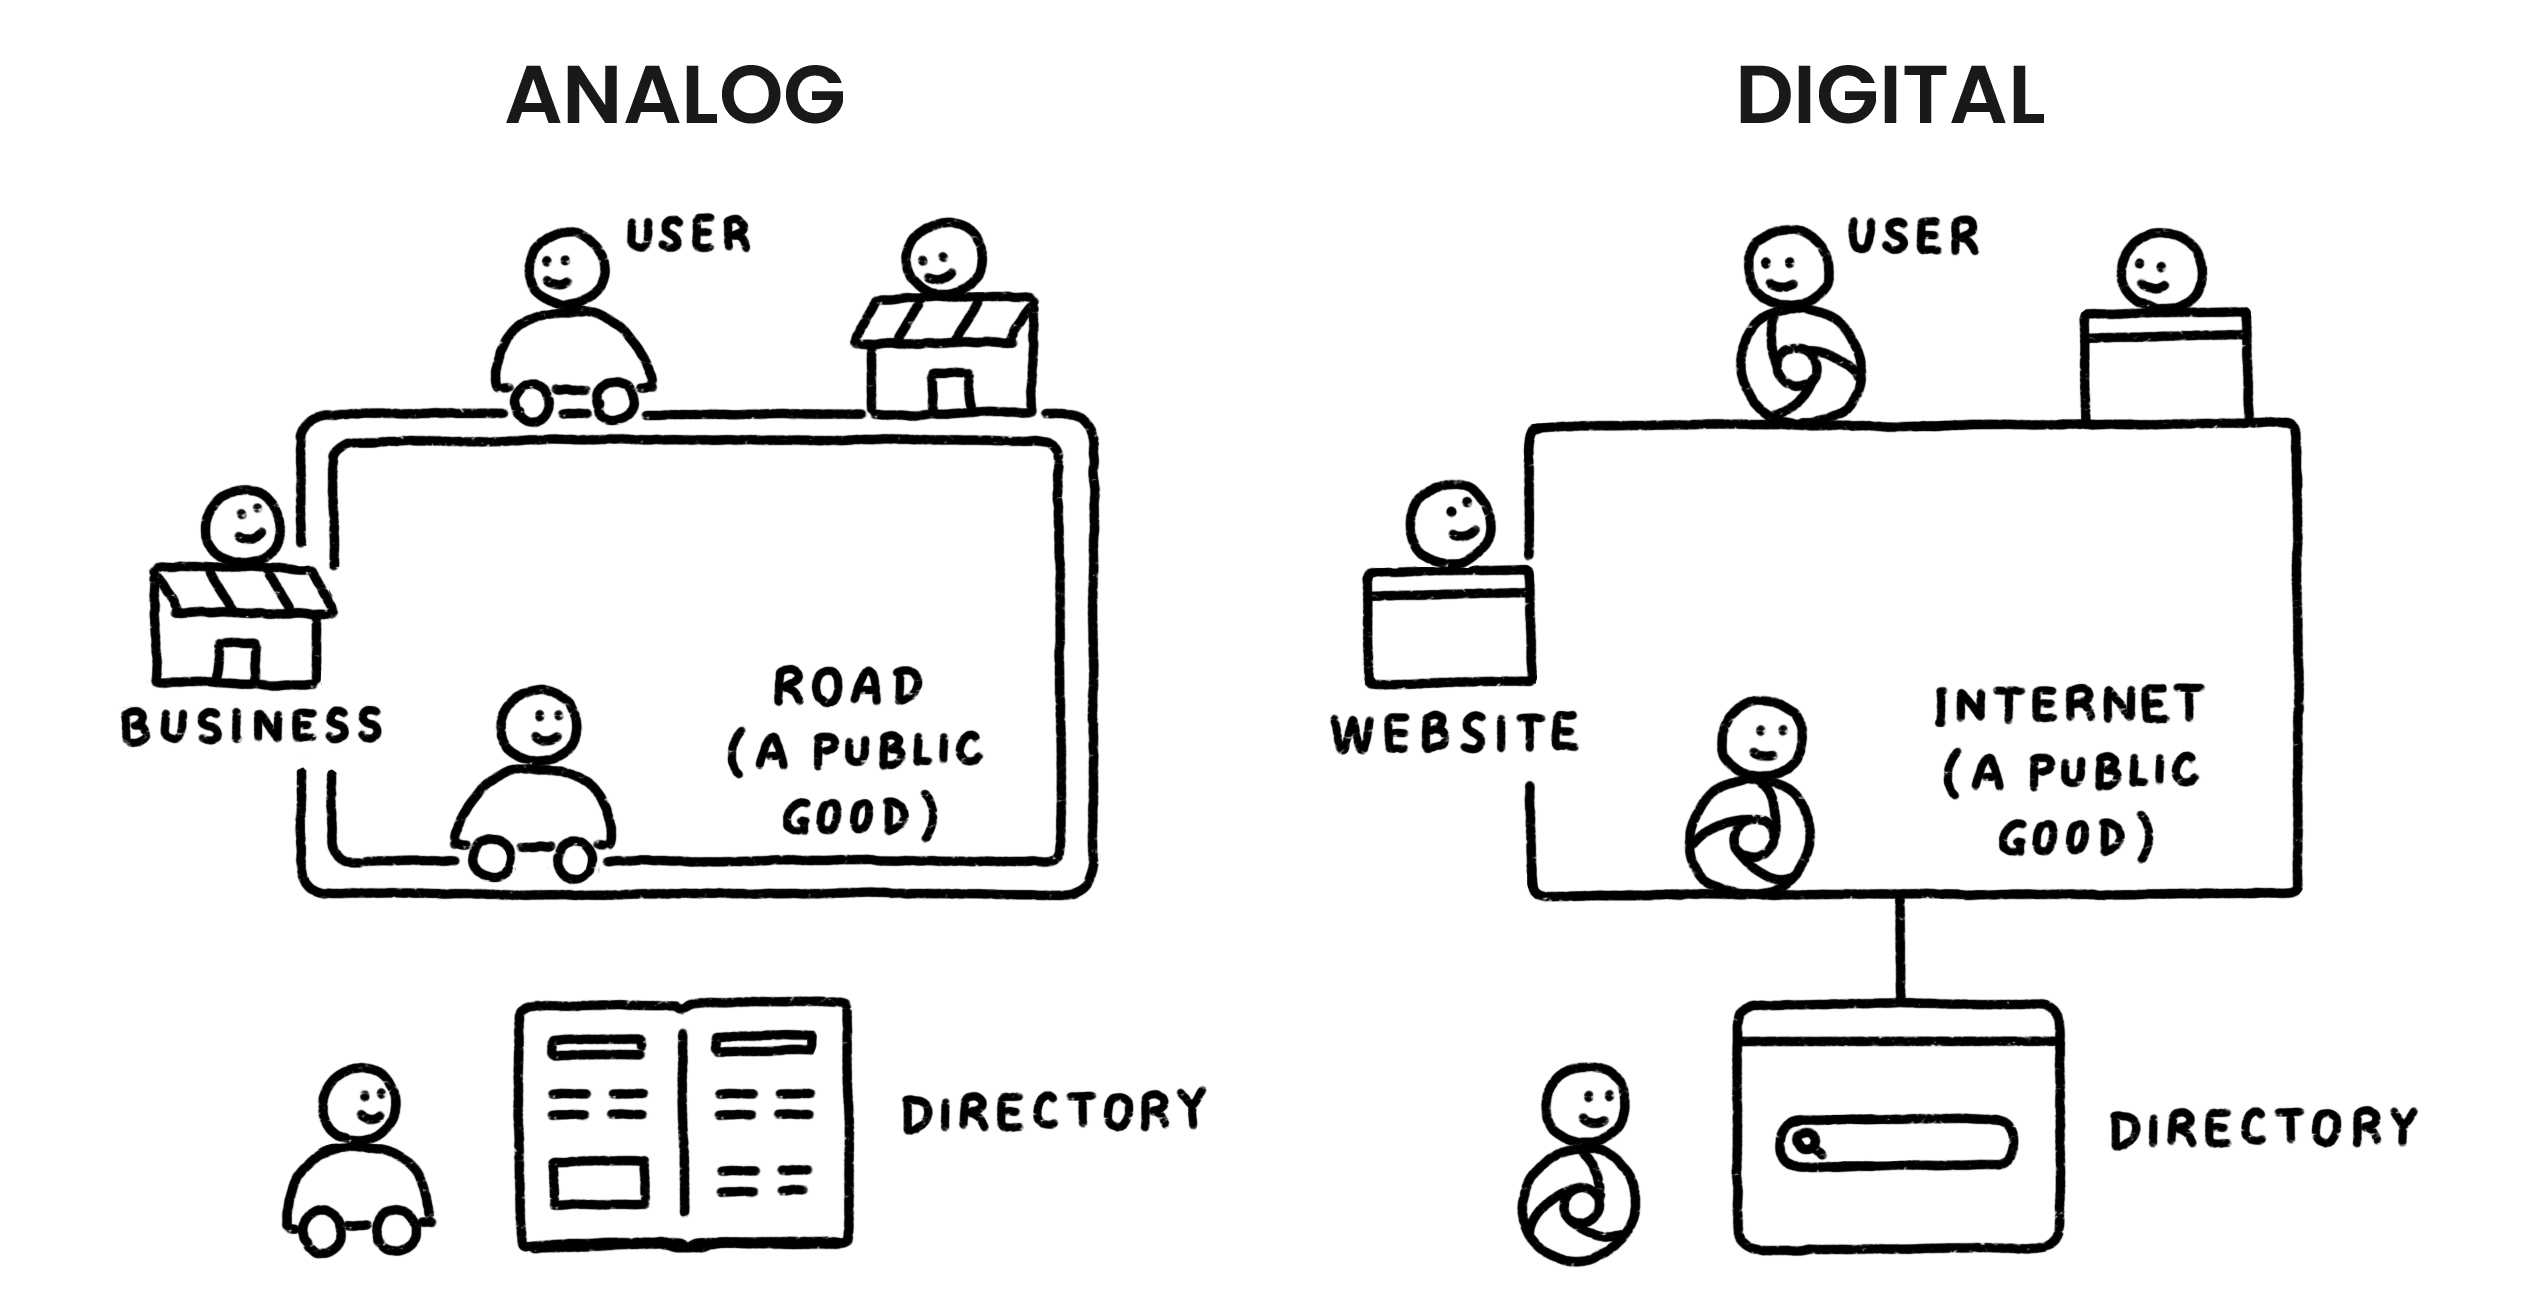 A comparison of the analog world and its network of roads, versus the digital world and its internet